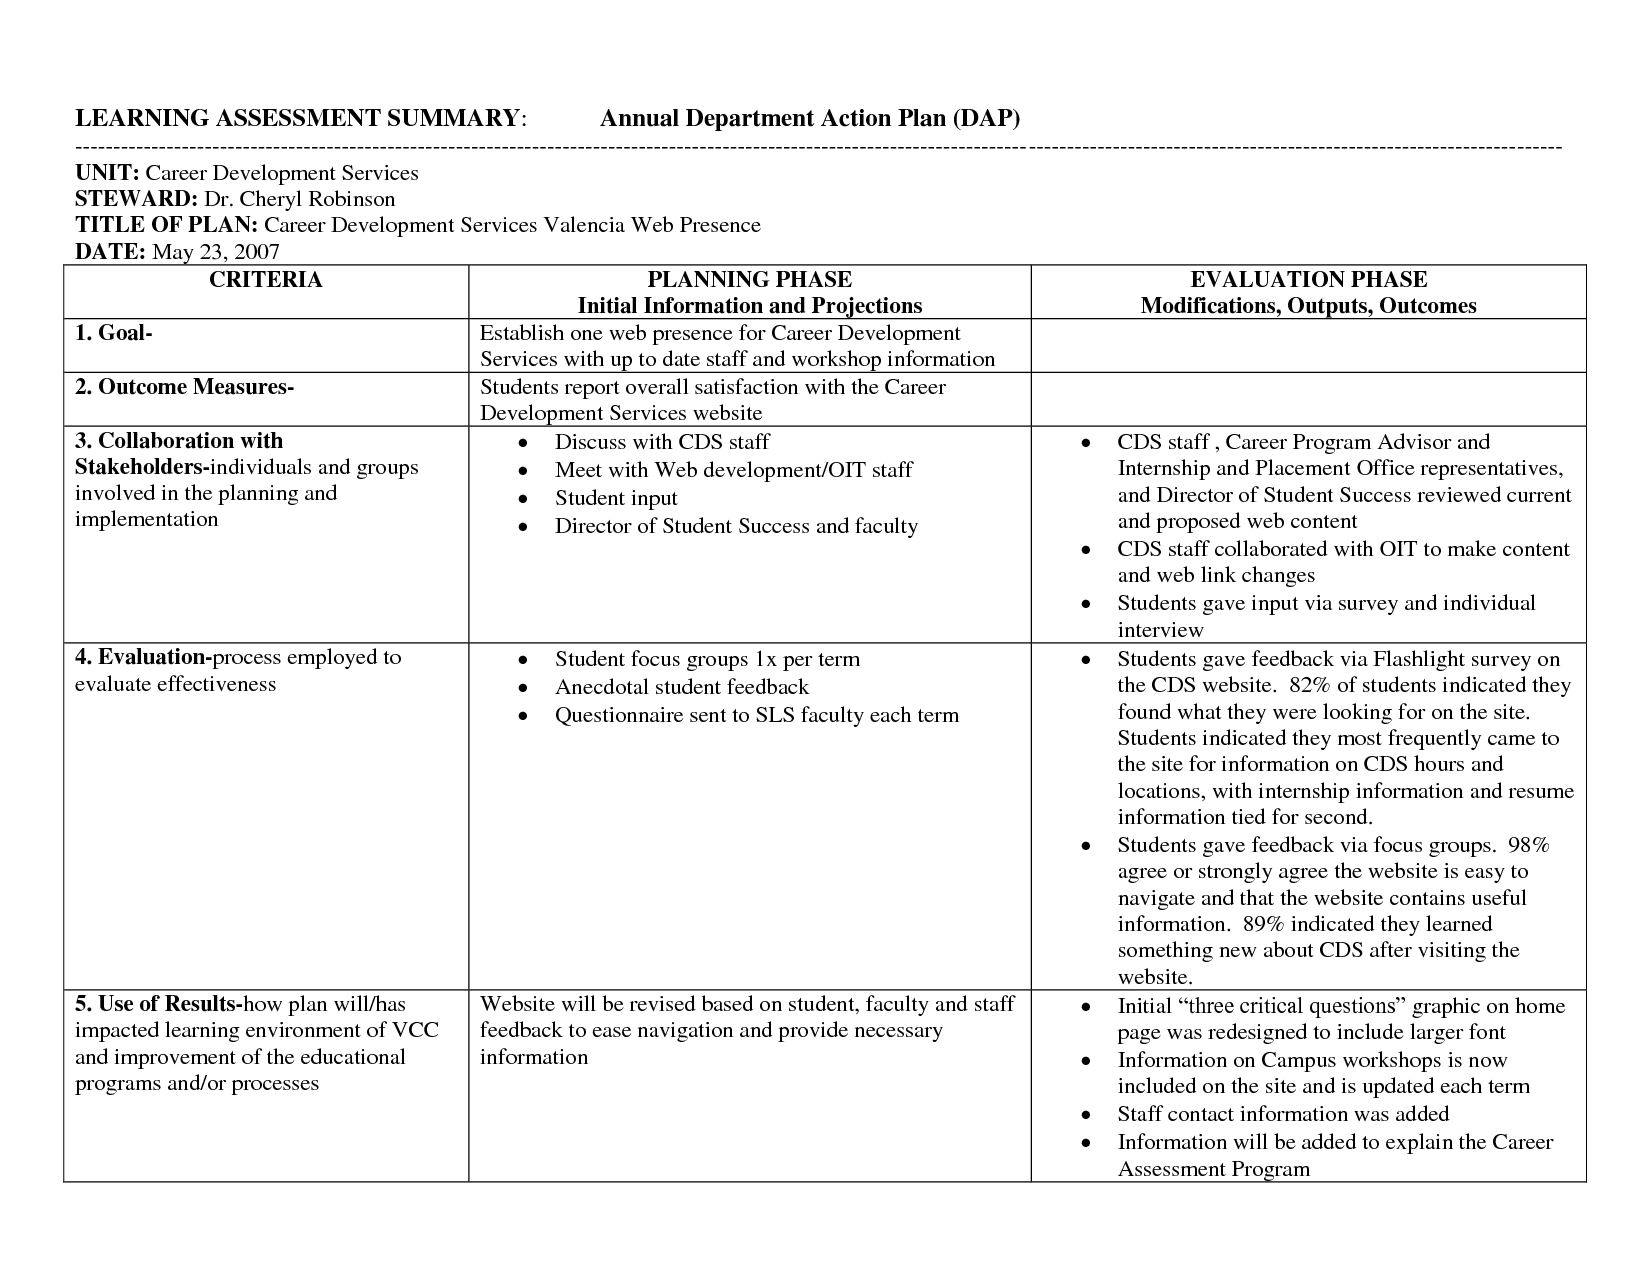 Career Services Department Action Plan Template Assessmnet | DEPARTMENT  ANNUAL REPORT  Individual Action Plan Template